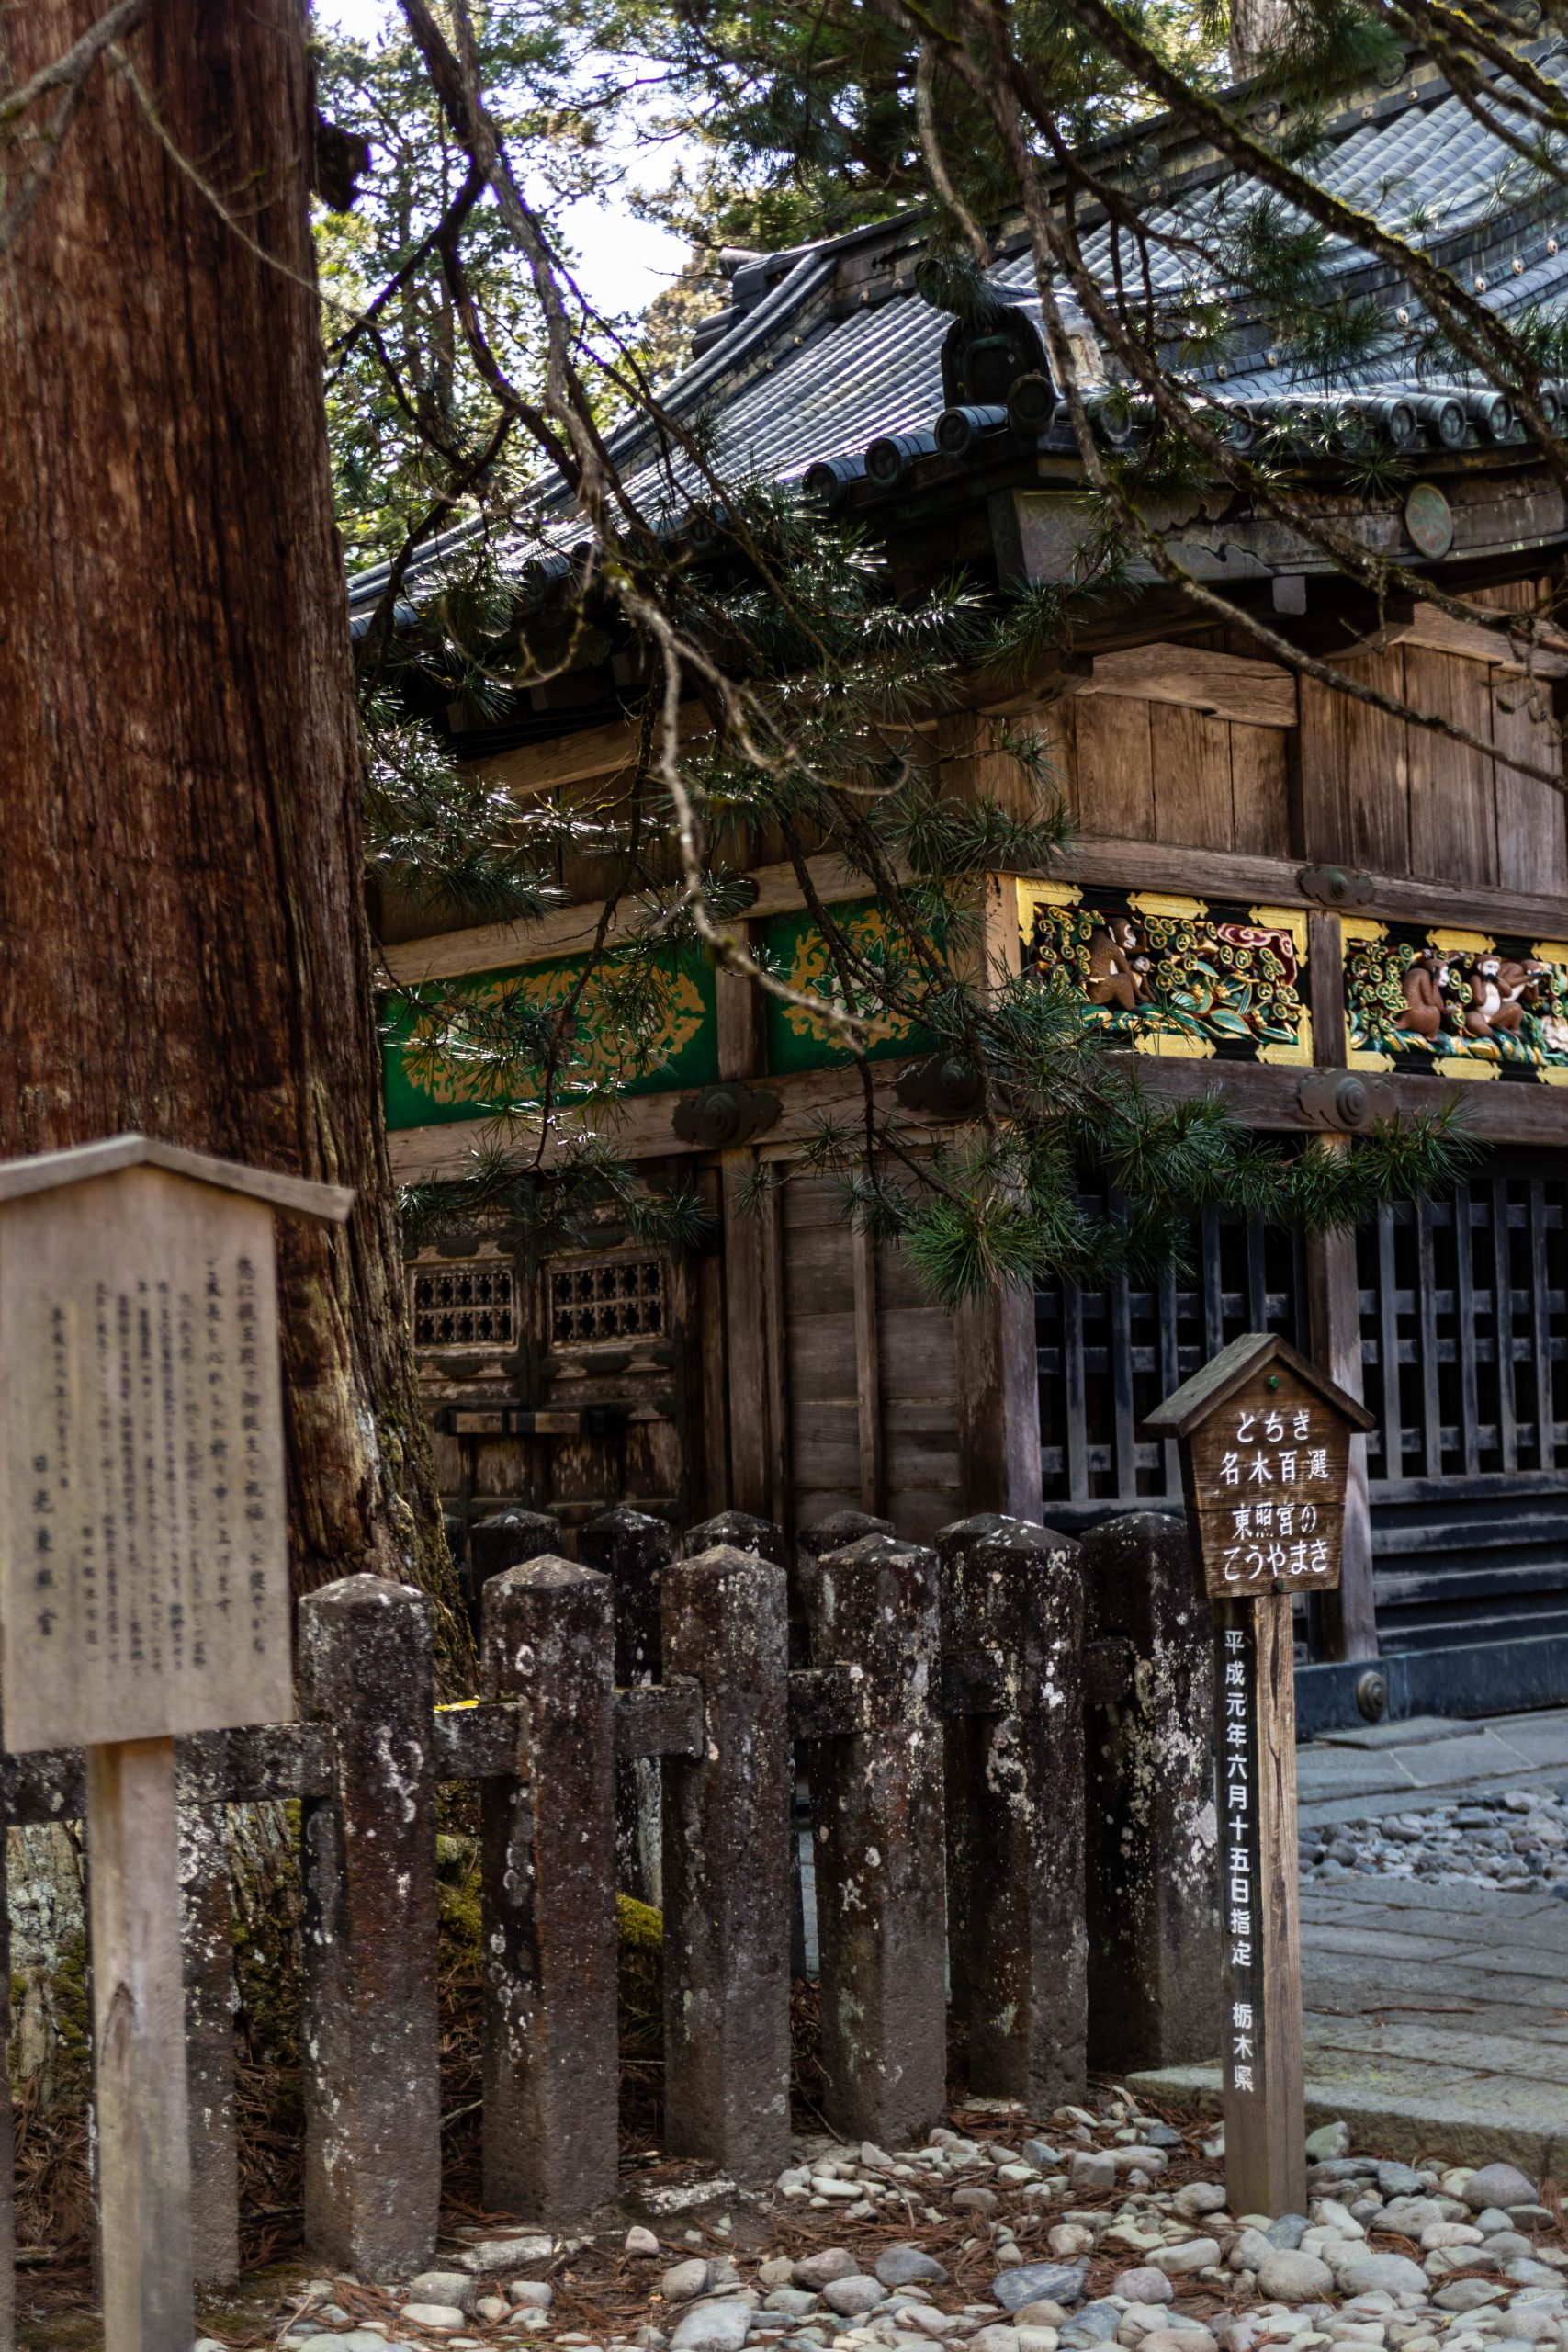 ancient Wooden Temples in Nikko, Japan, the Ultimate Travel Guide Written, Researched, and Photographed by Travel Writer & Photographer Annie Fairfax